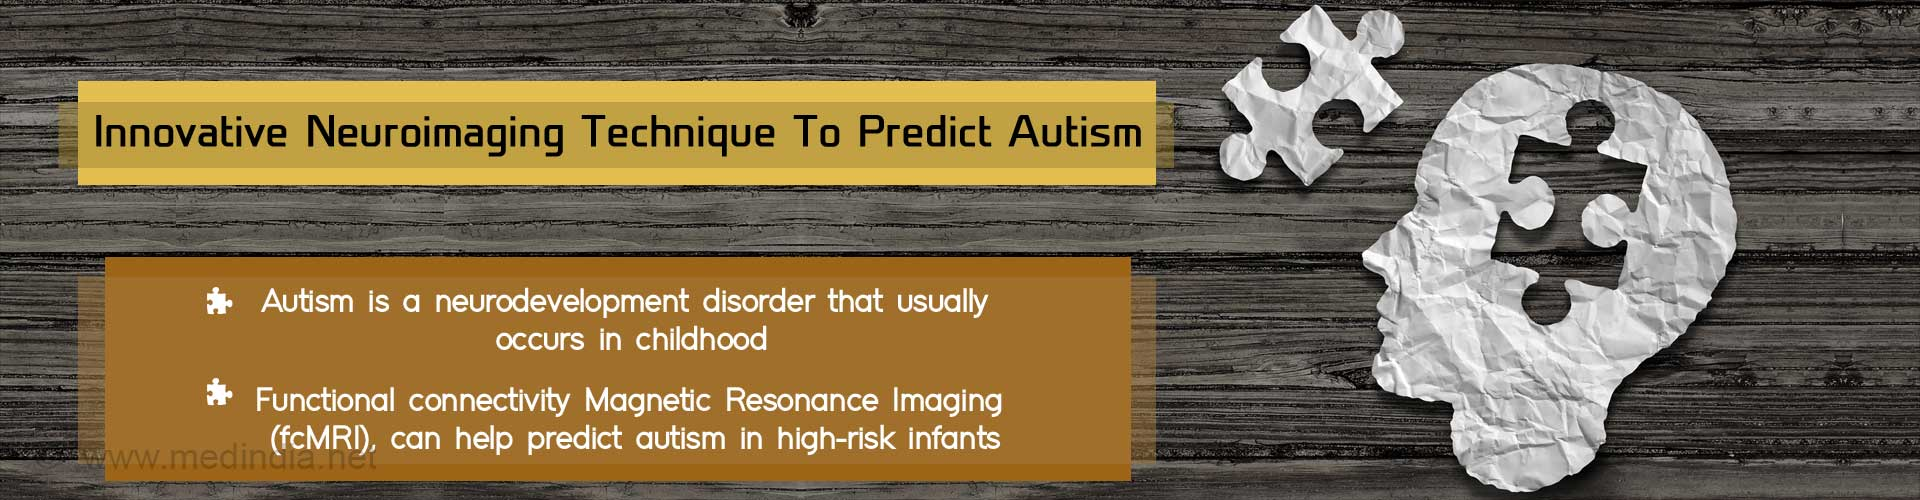 Innovative Neuroimaging Technique To Predict Autism - Autism is a neurodevelopment disorder that usually occurs in childhood - Functional connectivity Magnetic Resonance Imaging (fcMRI), can help predict autism in high-risk infants